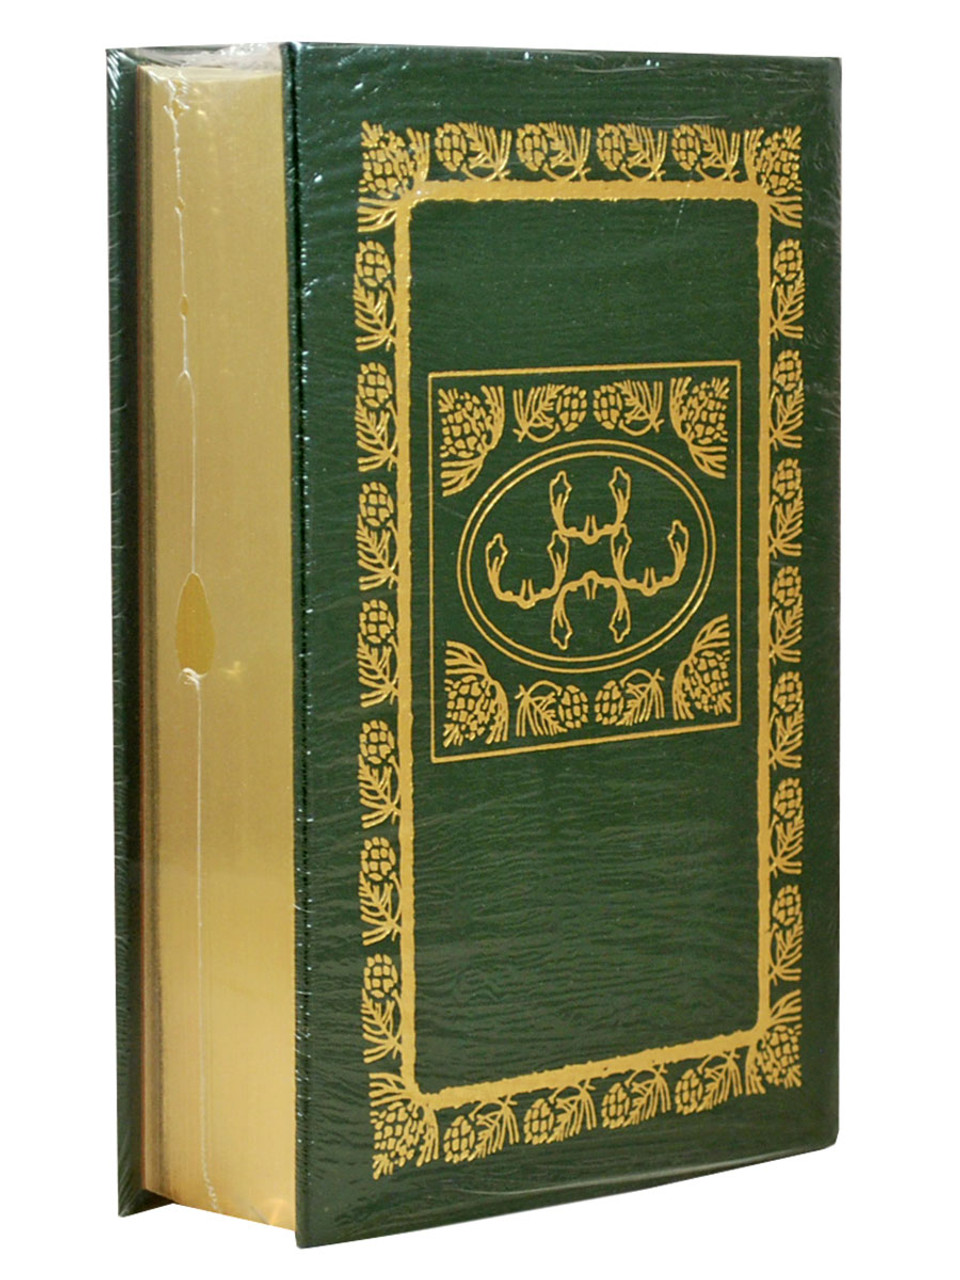 """Douglas Brinkley """"The Wilderness Warrior: Theodore Roosevelt and the Crusade for America"""" Signed First Edition, Leather Bound Collector's Edition w/COA [Sealed]"""